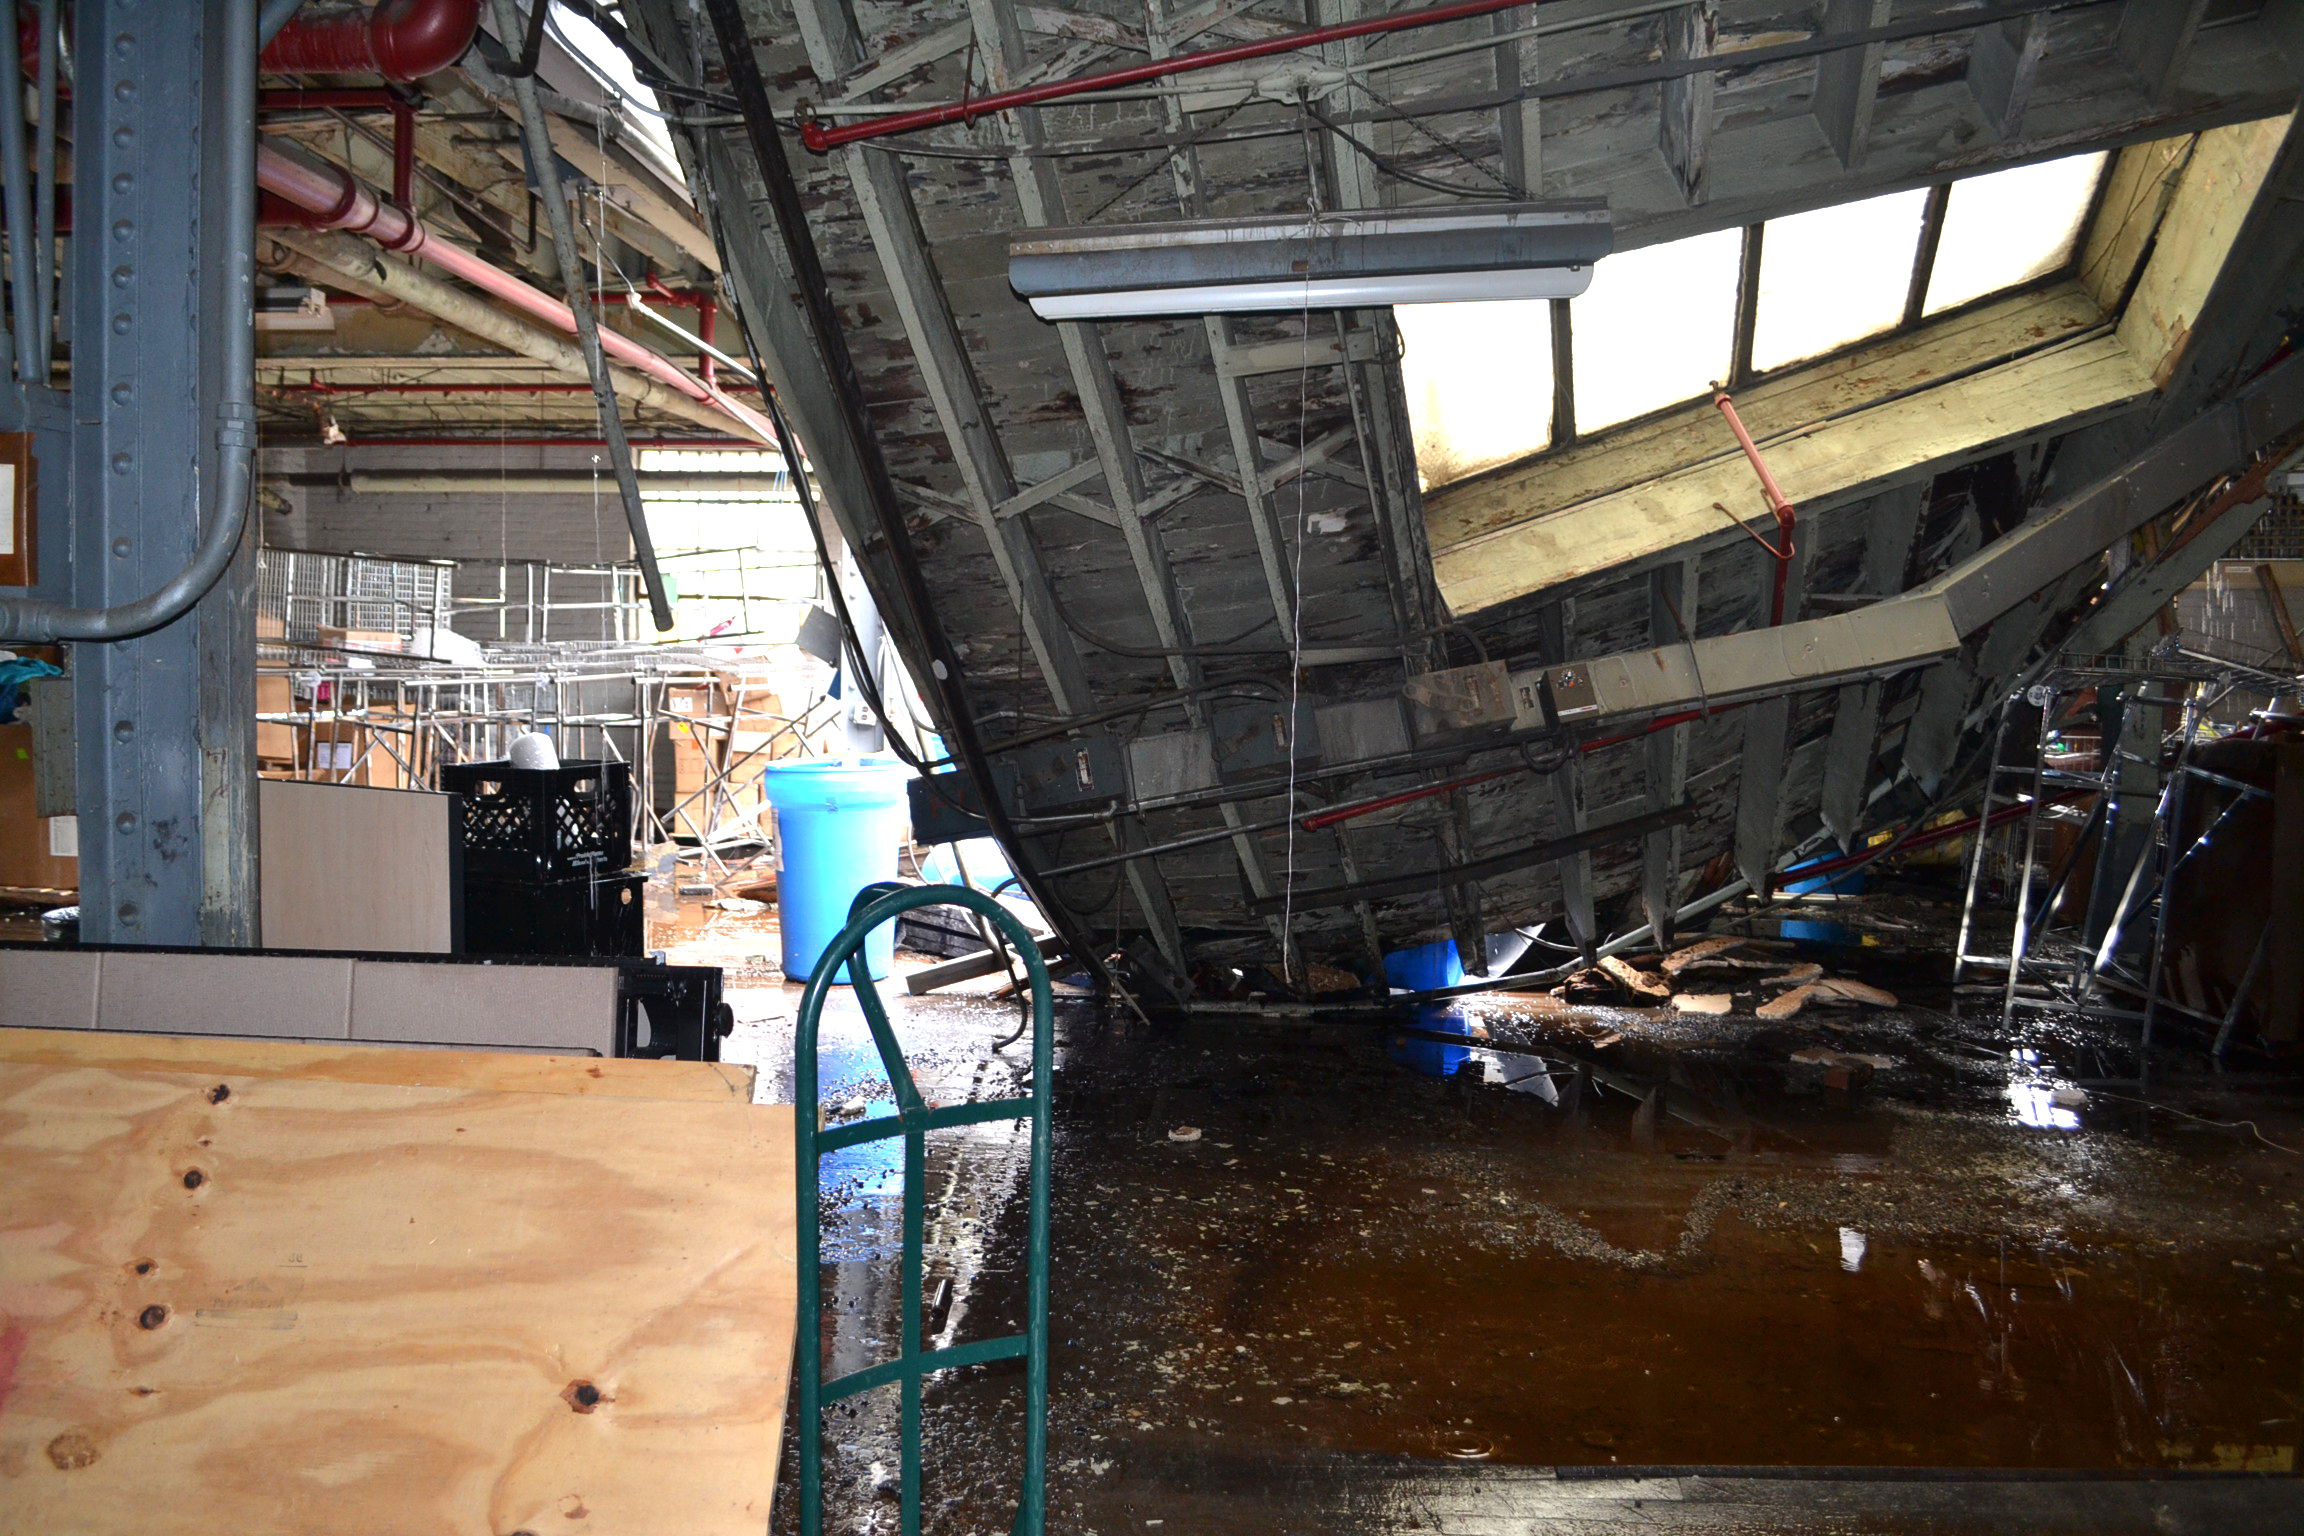 Svdp Warehouse Roof Collapses In Wake Of Storm Video